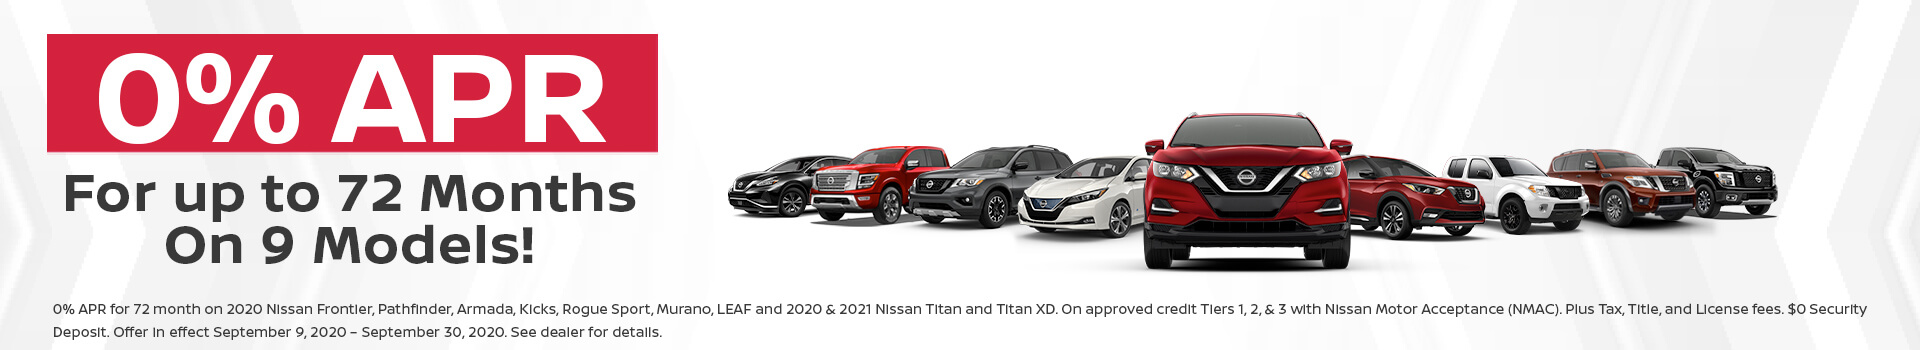 Nissan 0% APR Offer